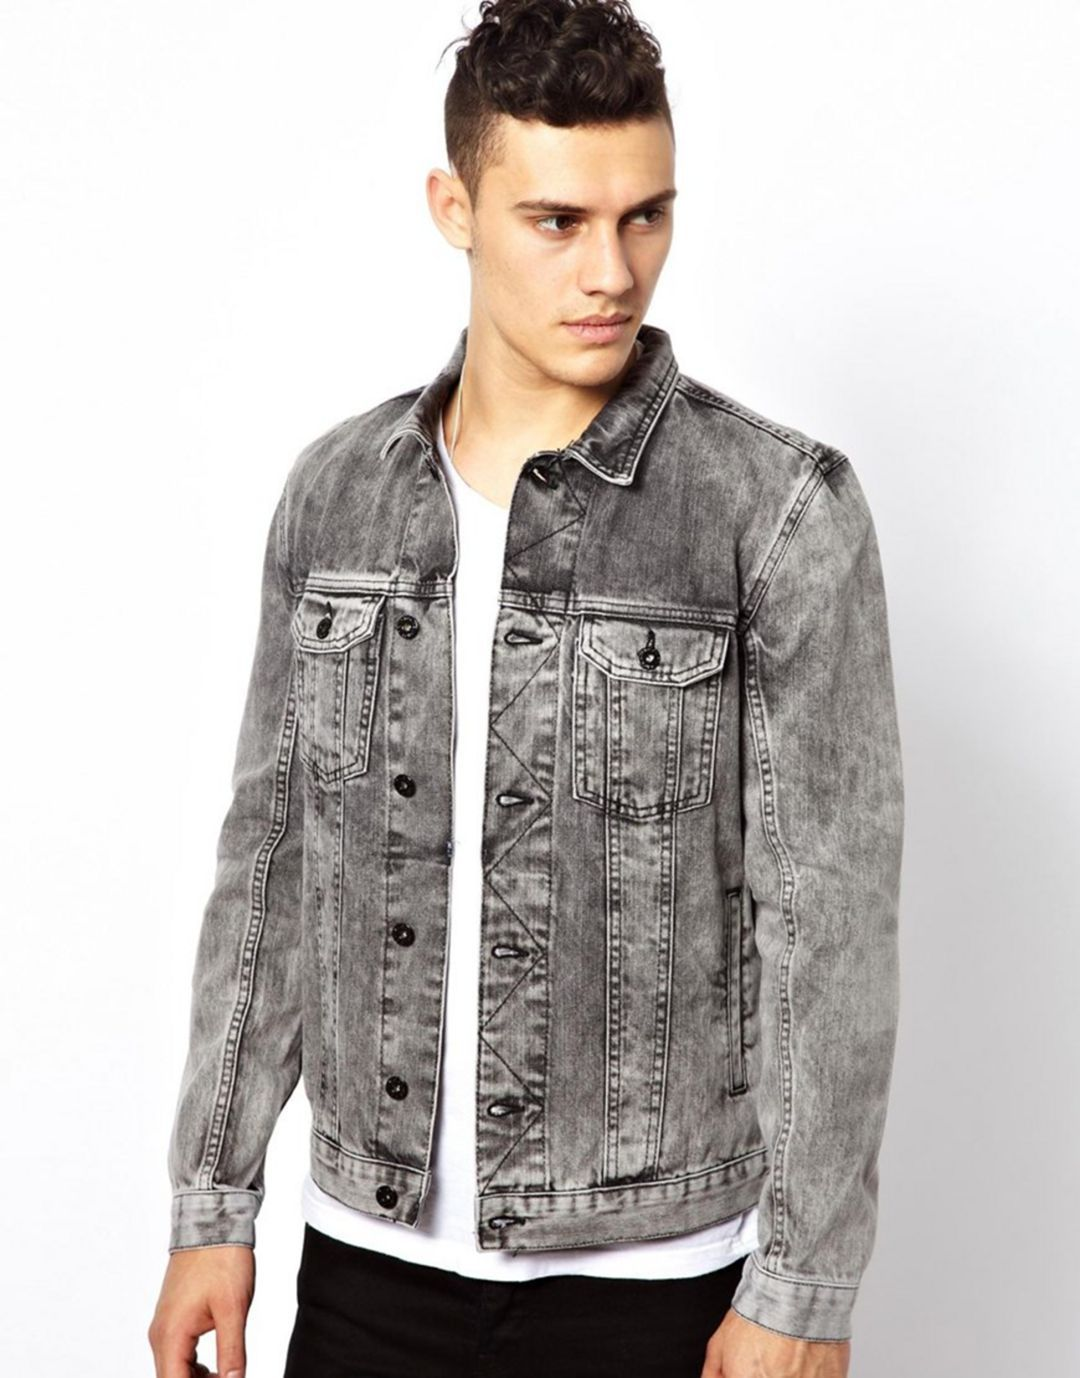 45 Awesome Jeans Jackets Ideas For Men Look Cooler Fashions Nowadays Denim Jacket Men Outfit Denim Jacket Men Grey Denim Jacket [ 1378 x 1080 Pixel ]